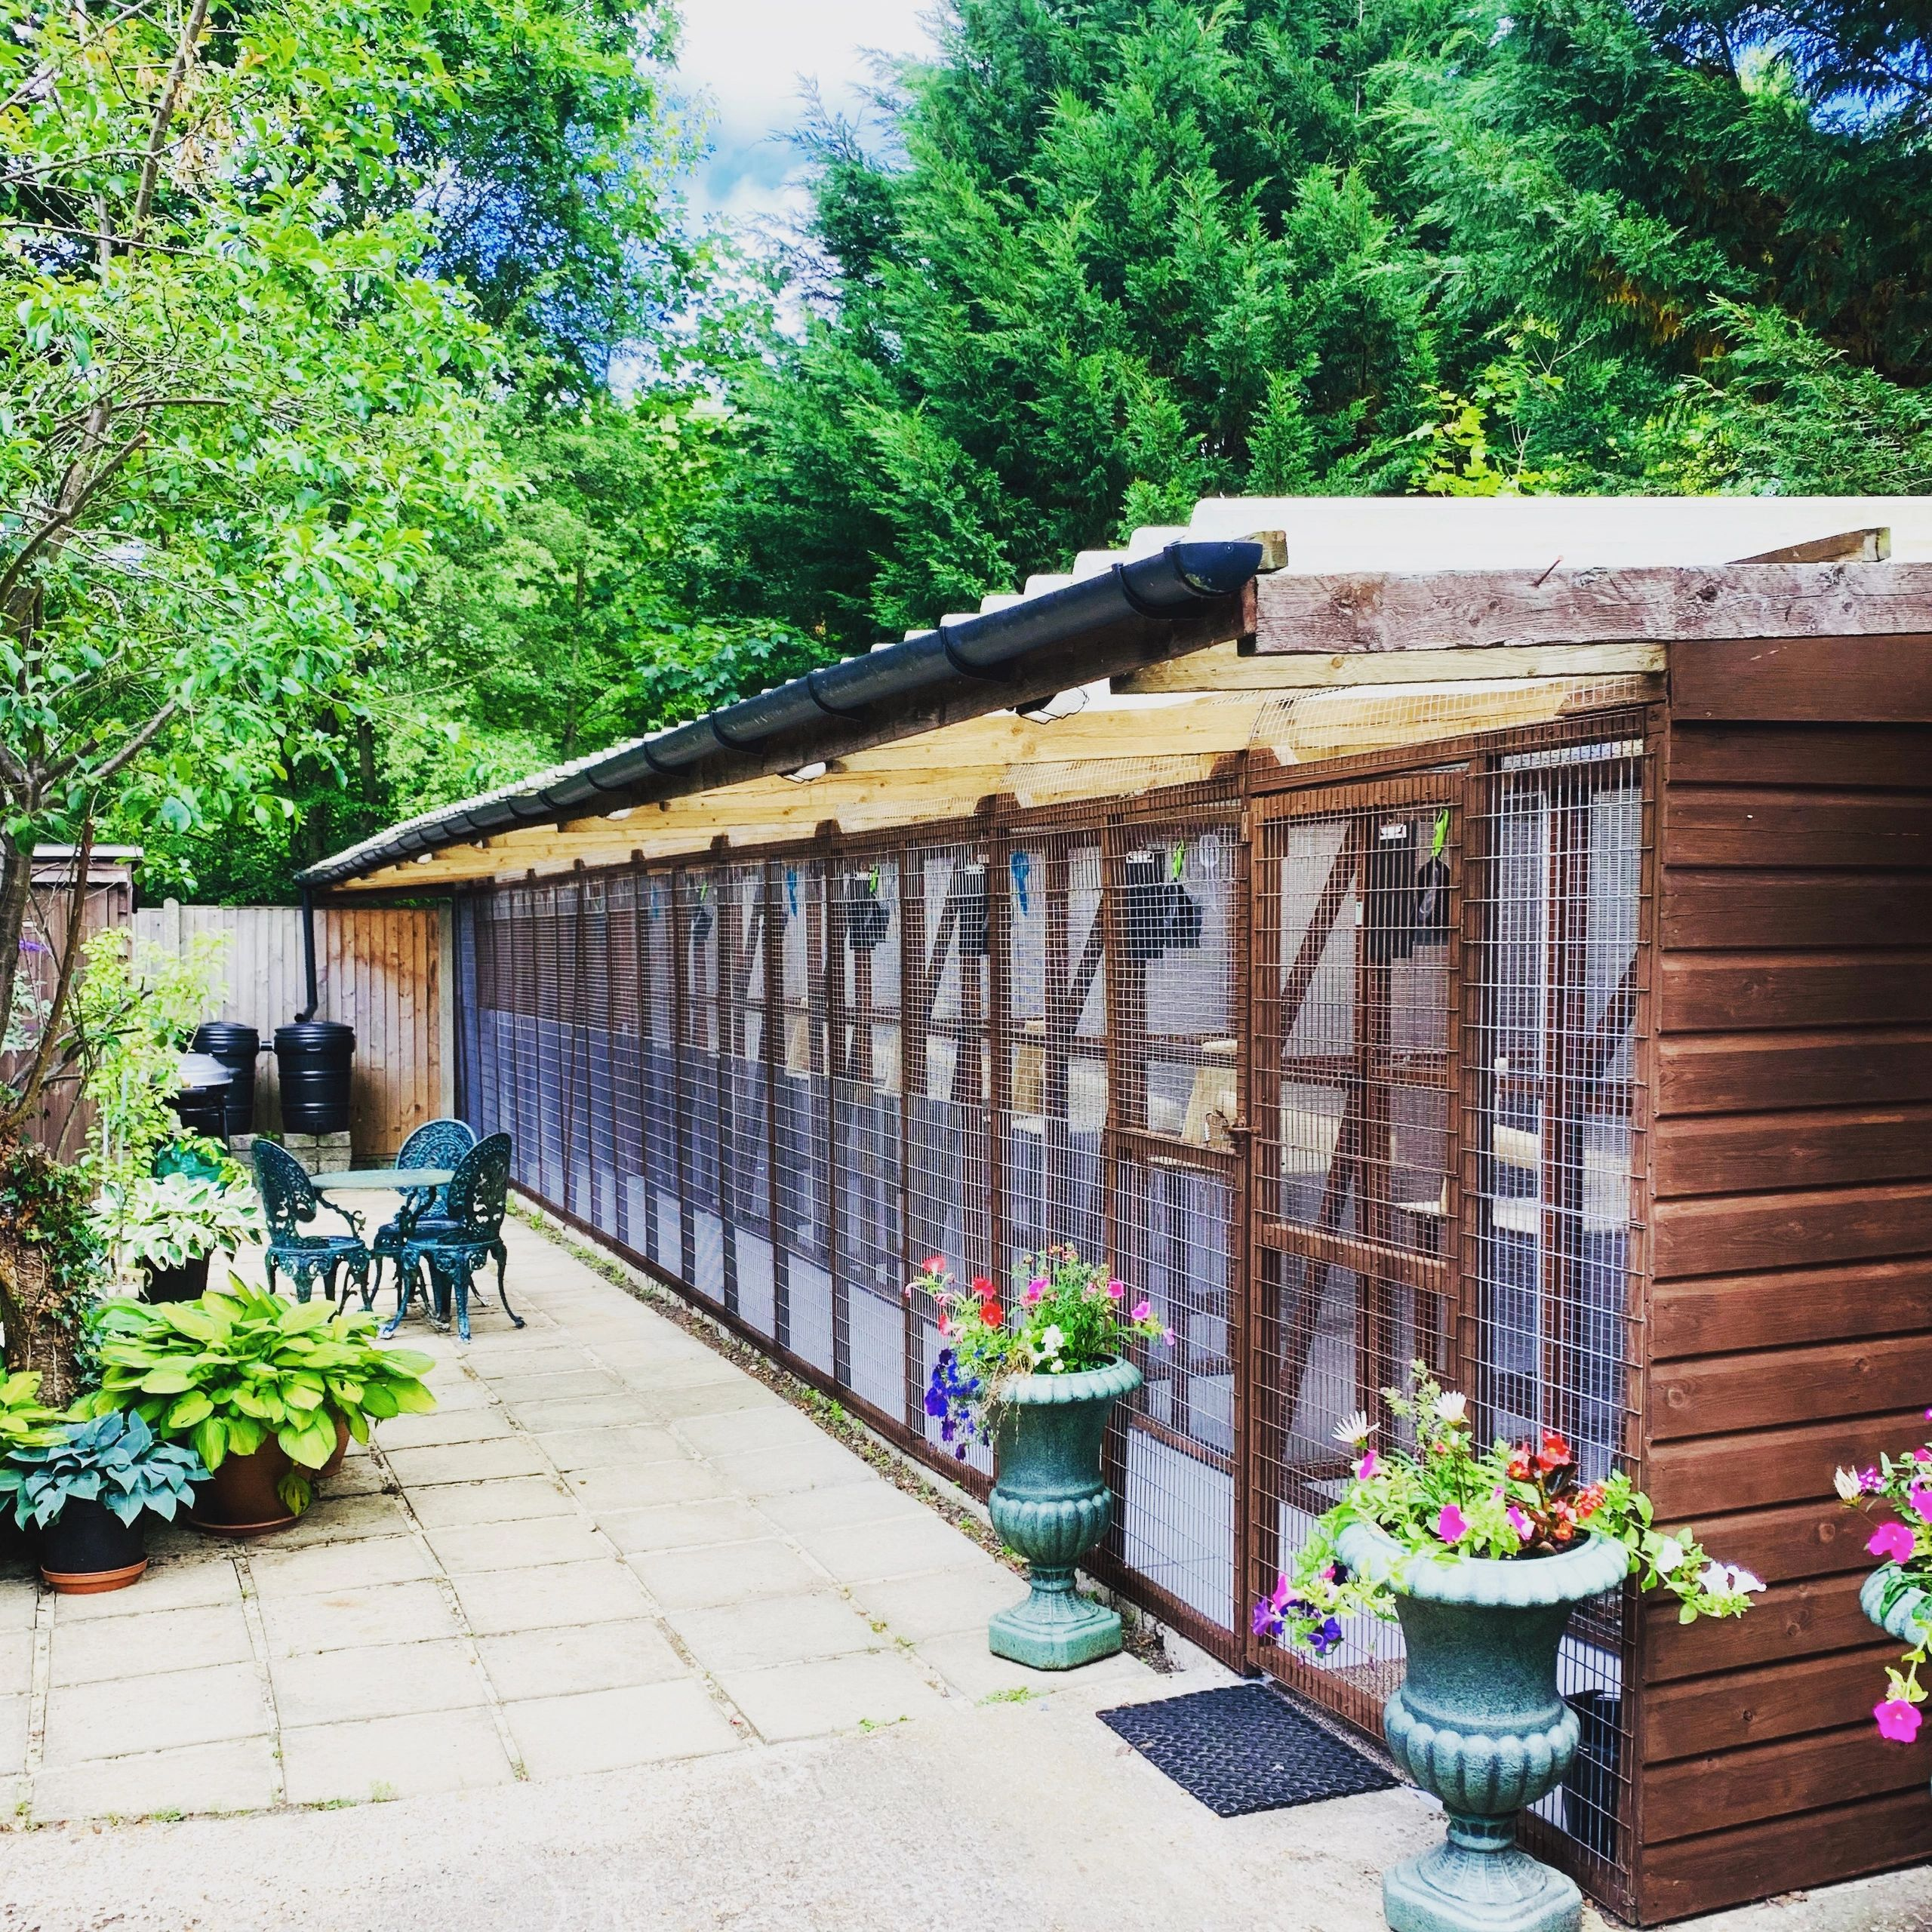 Picture of the boarding cattery